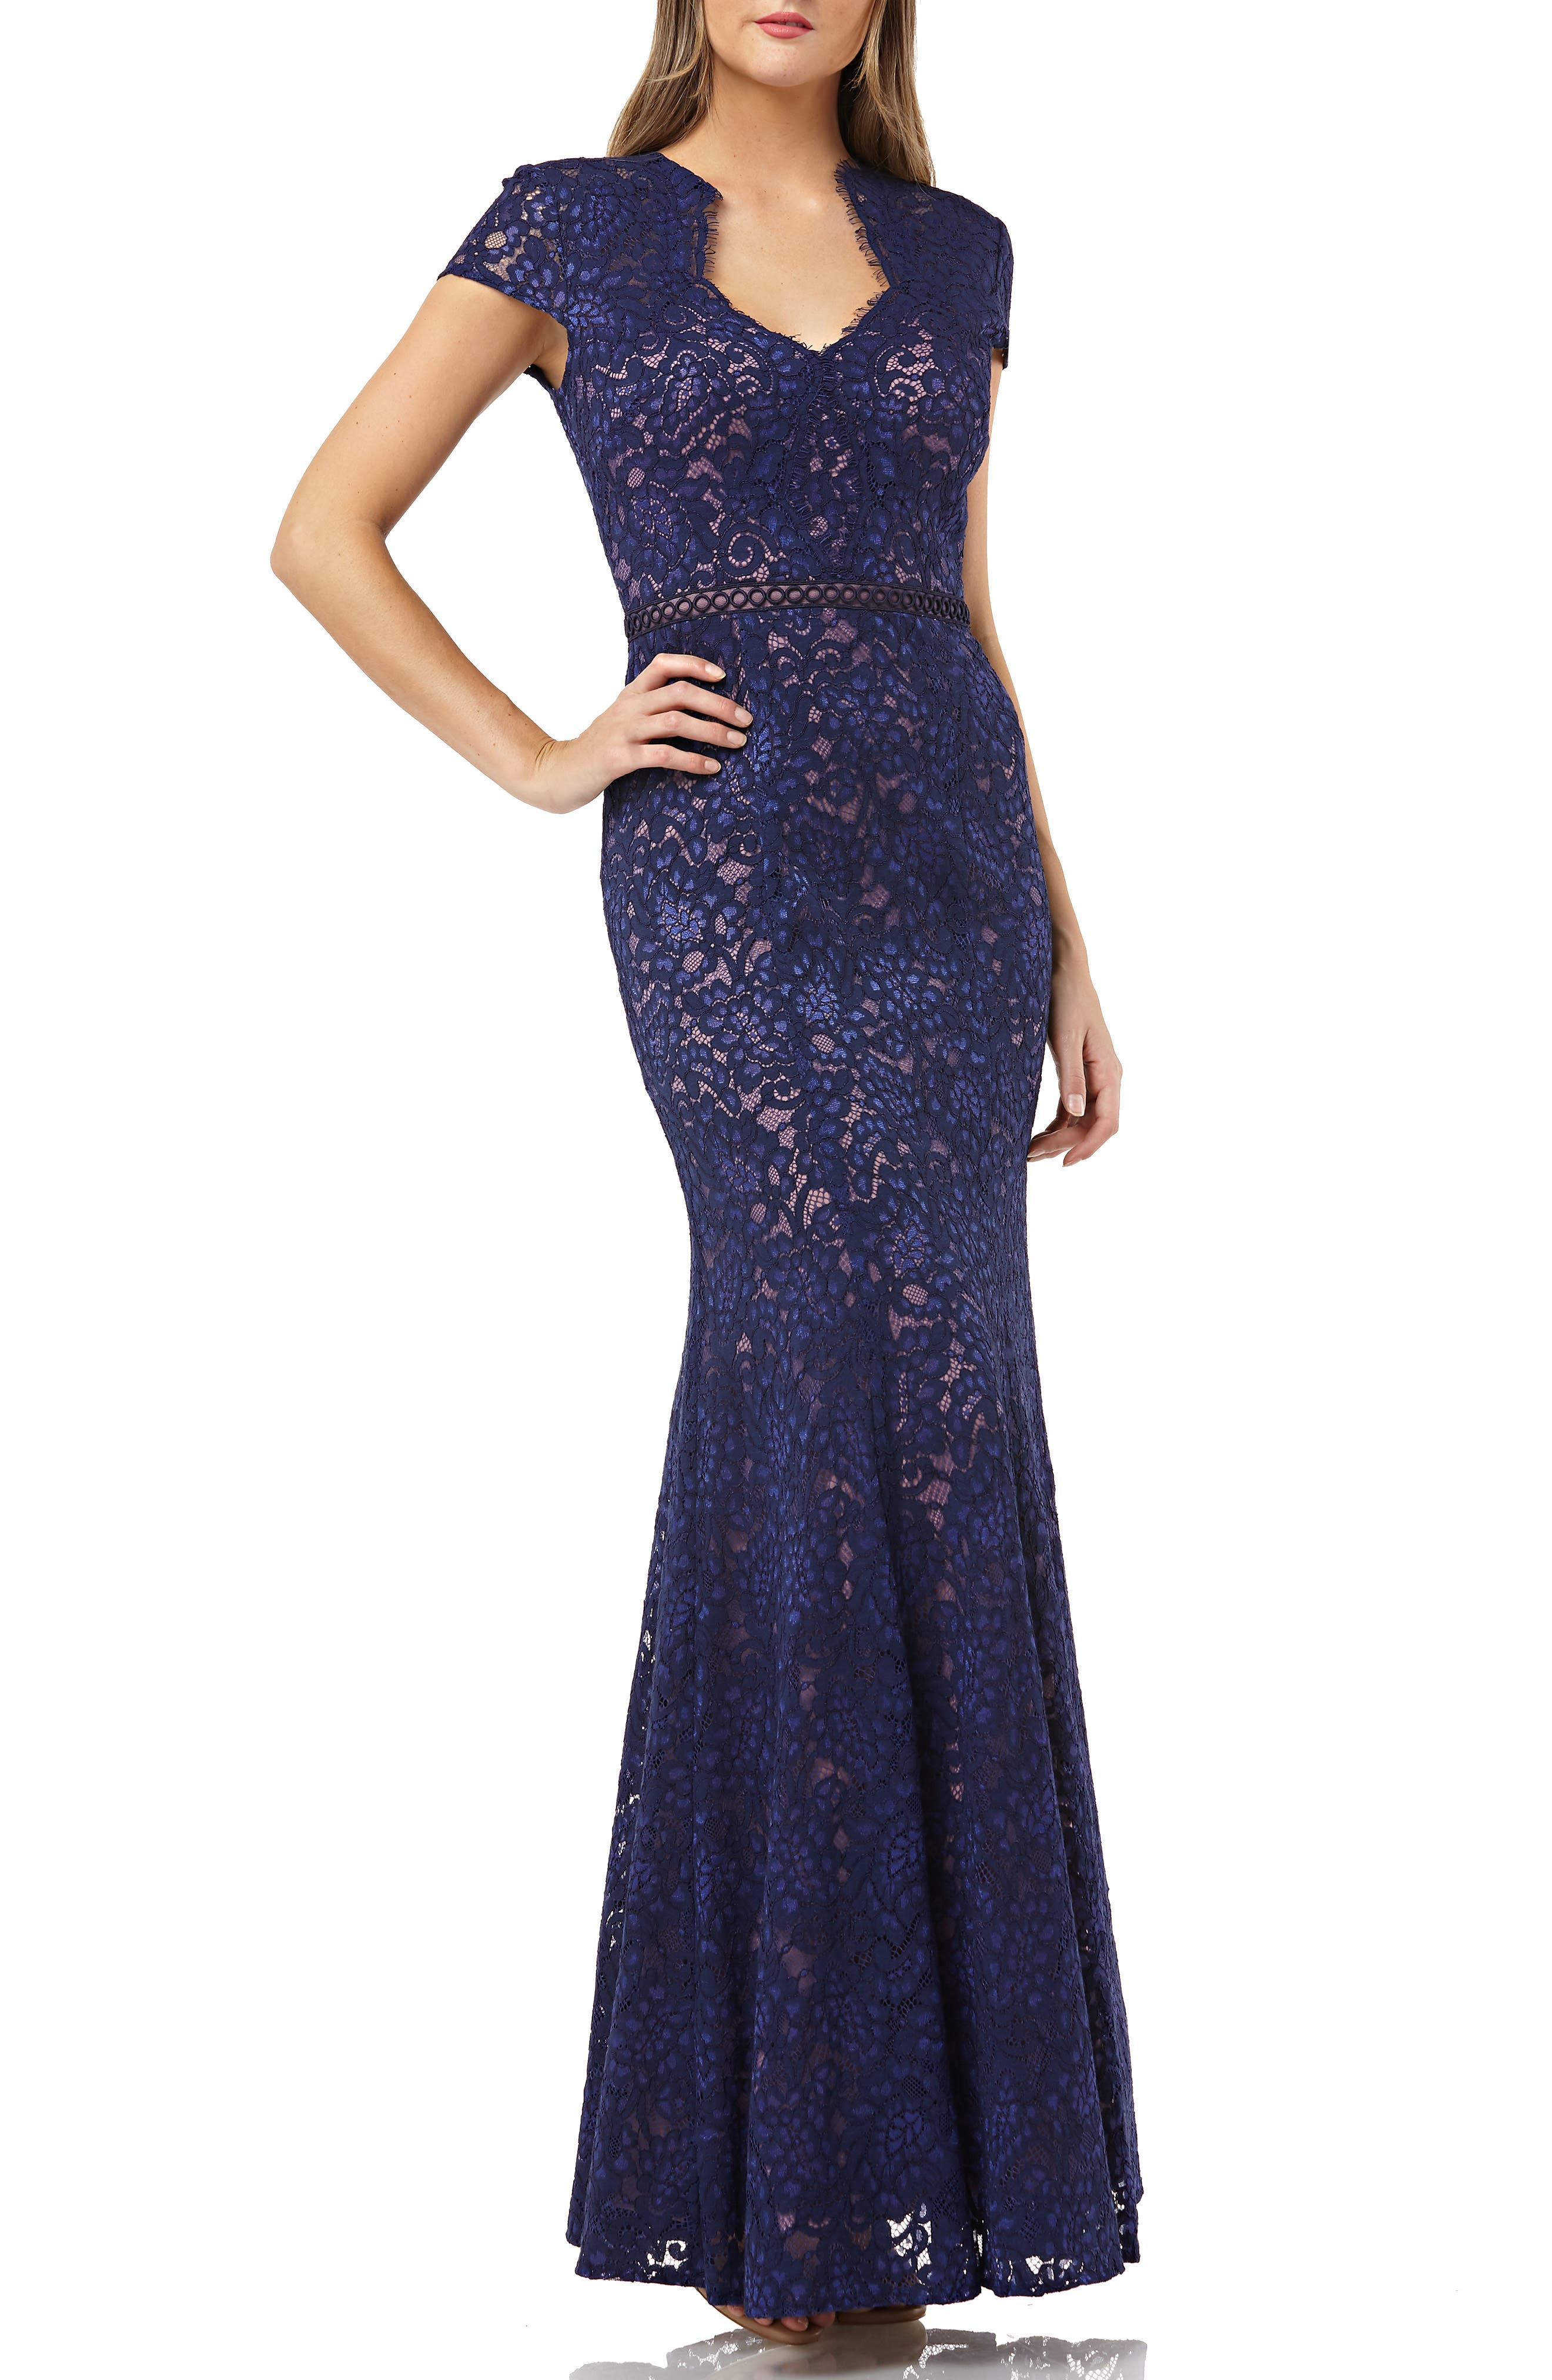 JS COLLECTIONS Lace Mermaid Gown, Main, color, NAVY/ ROSE